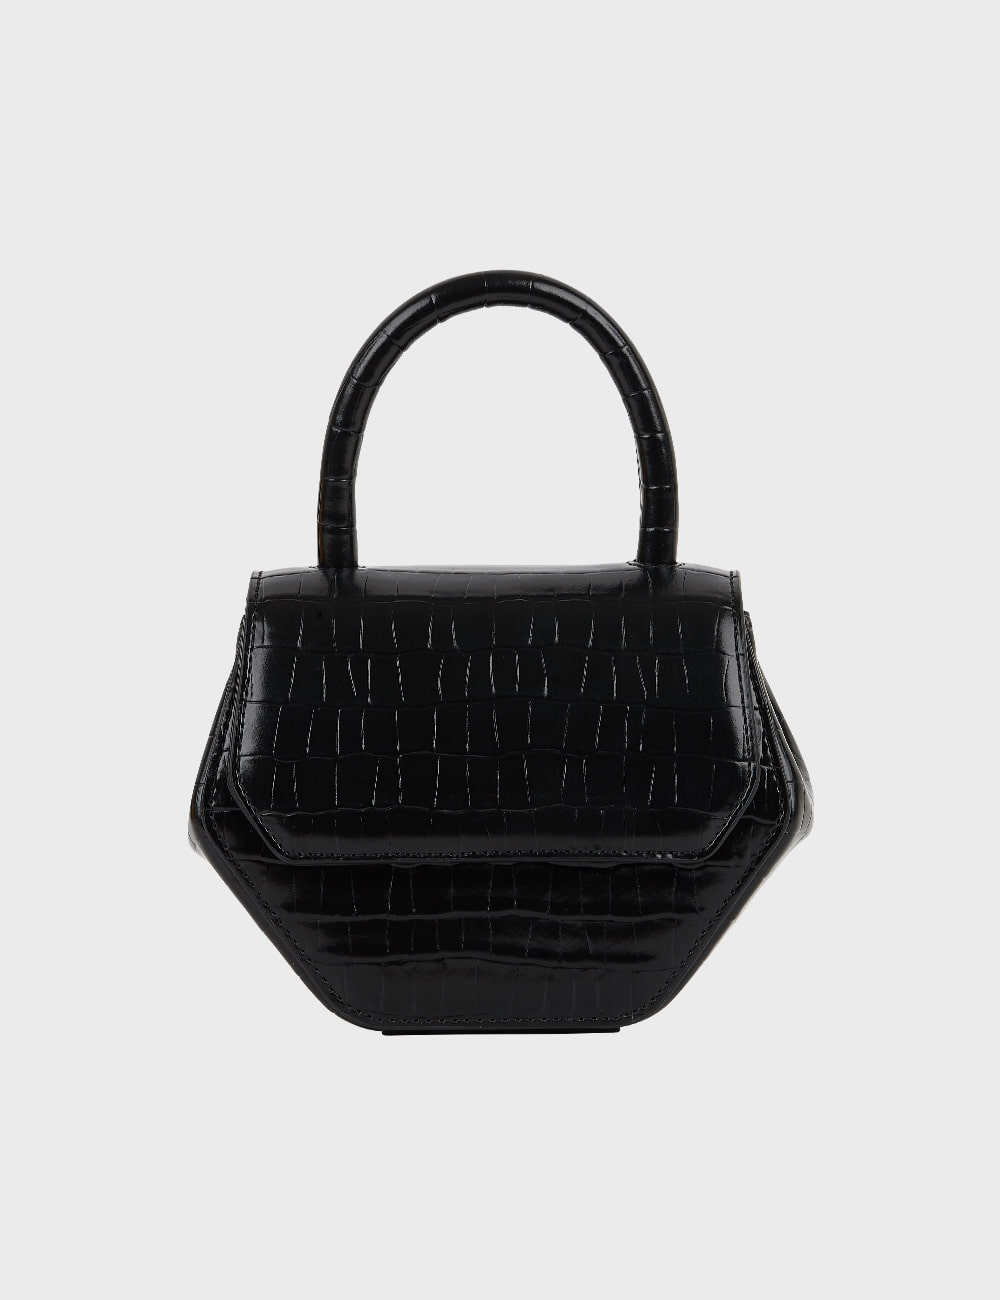 MAISON246,246 MAGOT CROCODILE SMALL BAG - BLACK,No.246